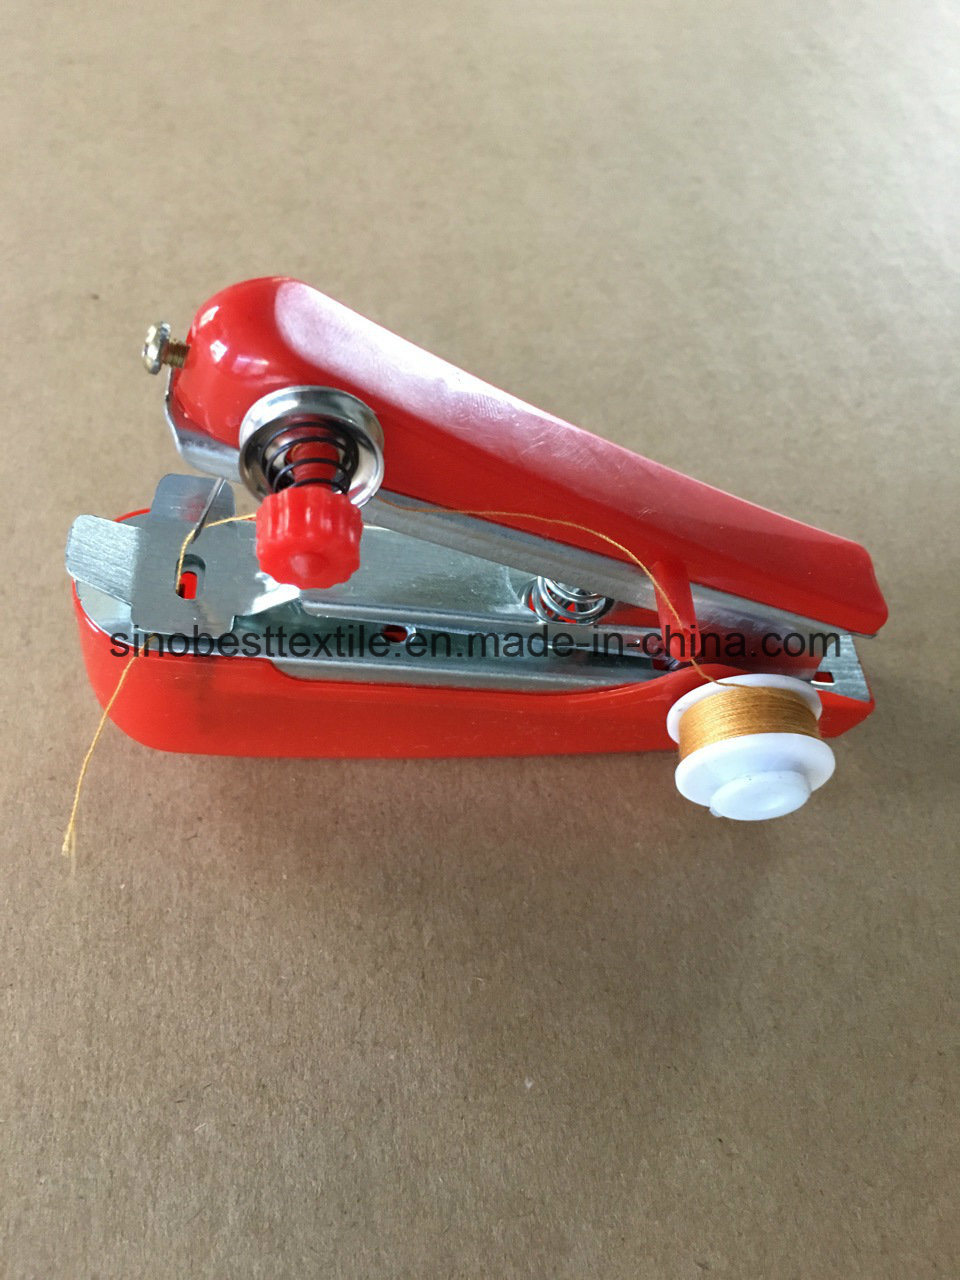 Mini Household Manual Portable Small Pocket-Size Sewing Machine